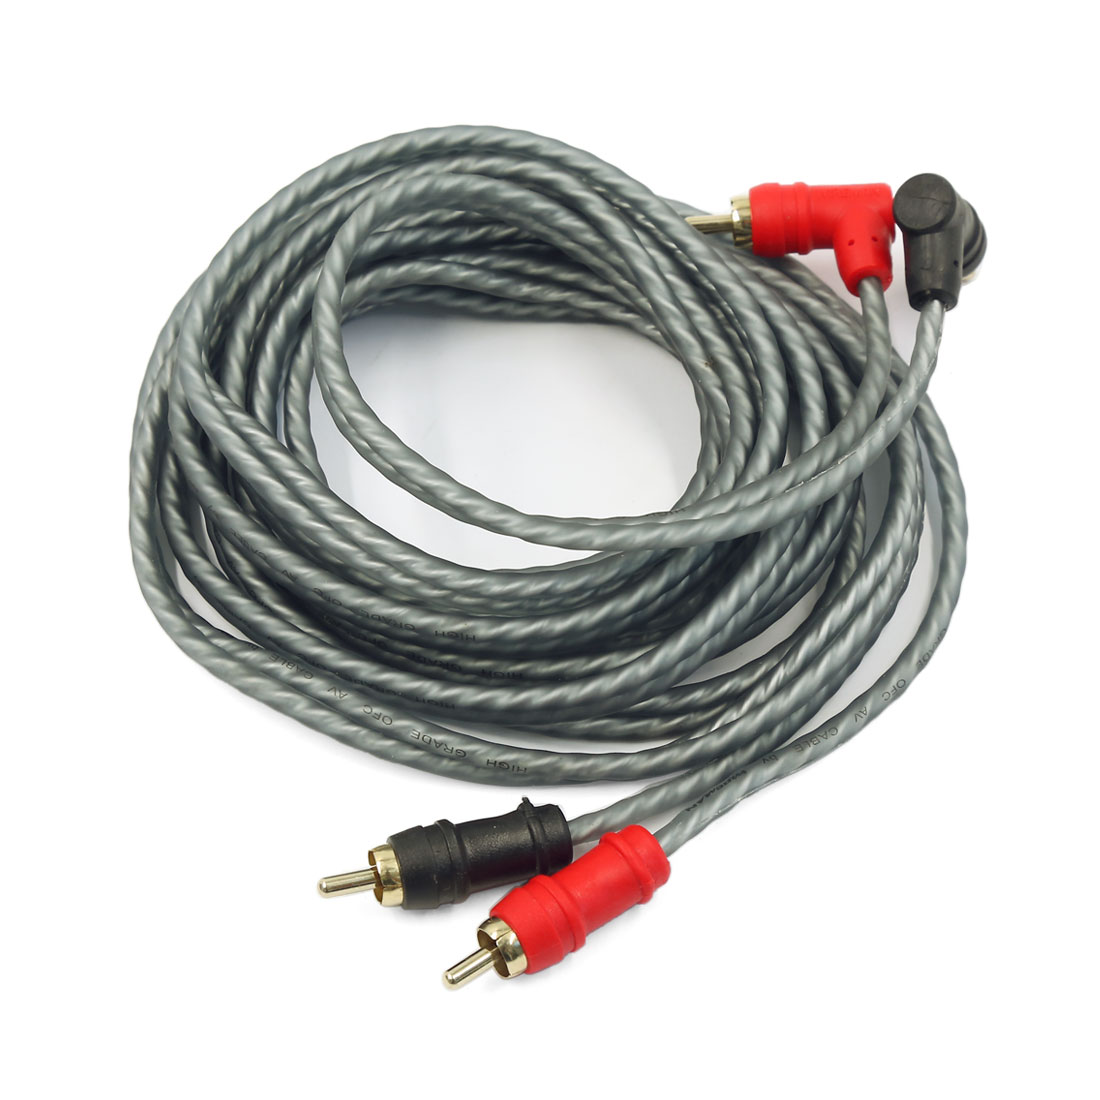 2RCA-2RCA Male to Male Cable Cord for Car Audio System Home Theater 3 Meters Gray